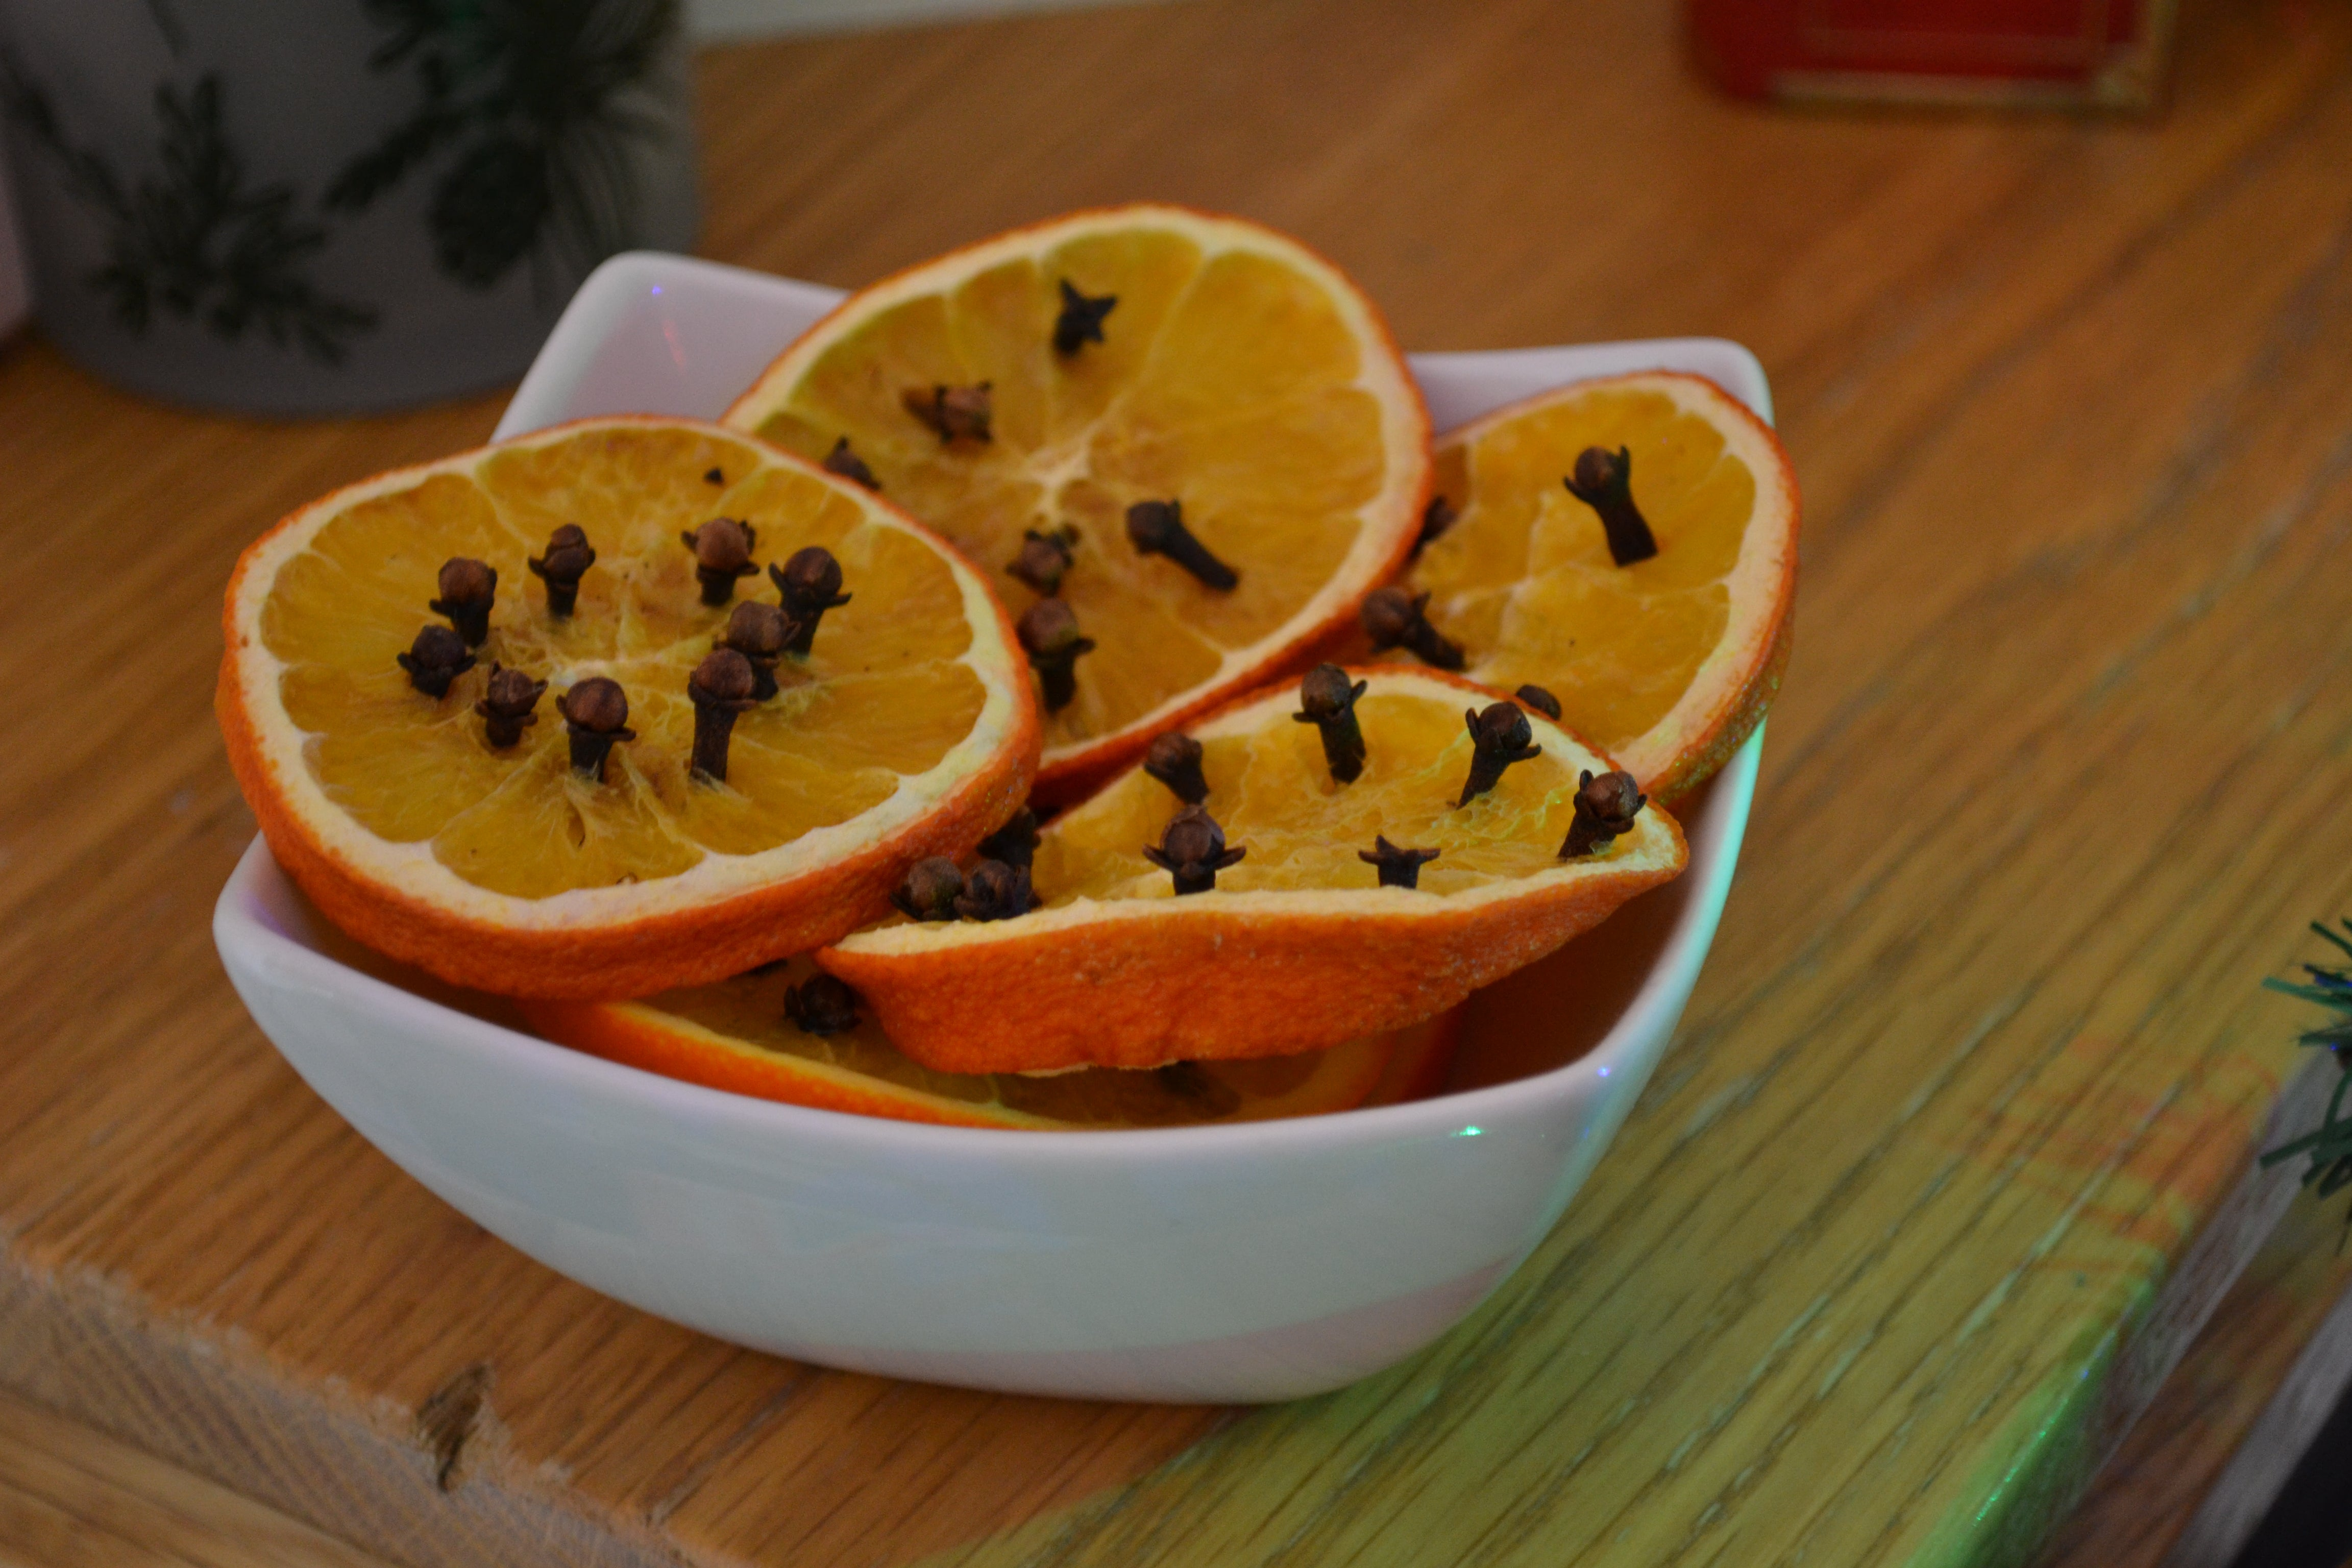 How To Make Your House Smell Like Christmas With Oranges